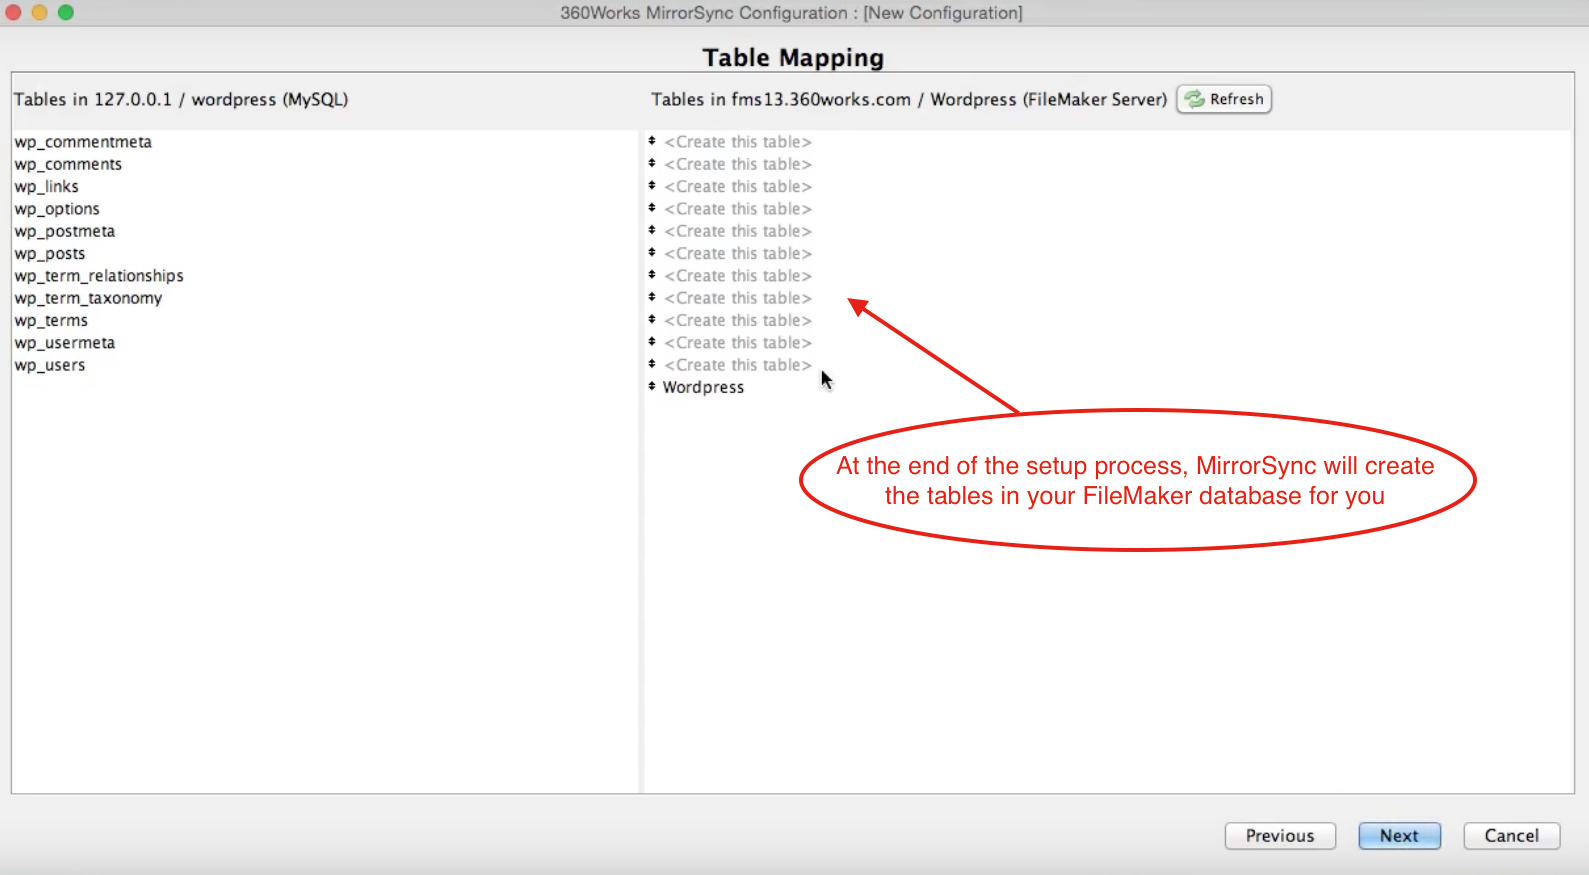 Do not do anything with the FileMaker tables when prompted. MirrorSync will add these for you.